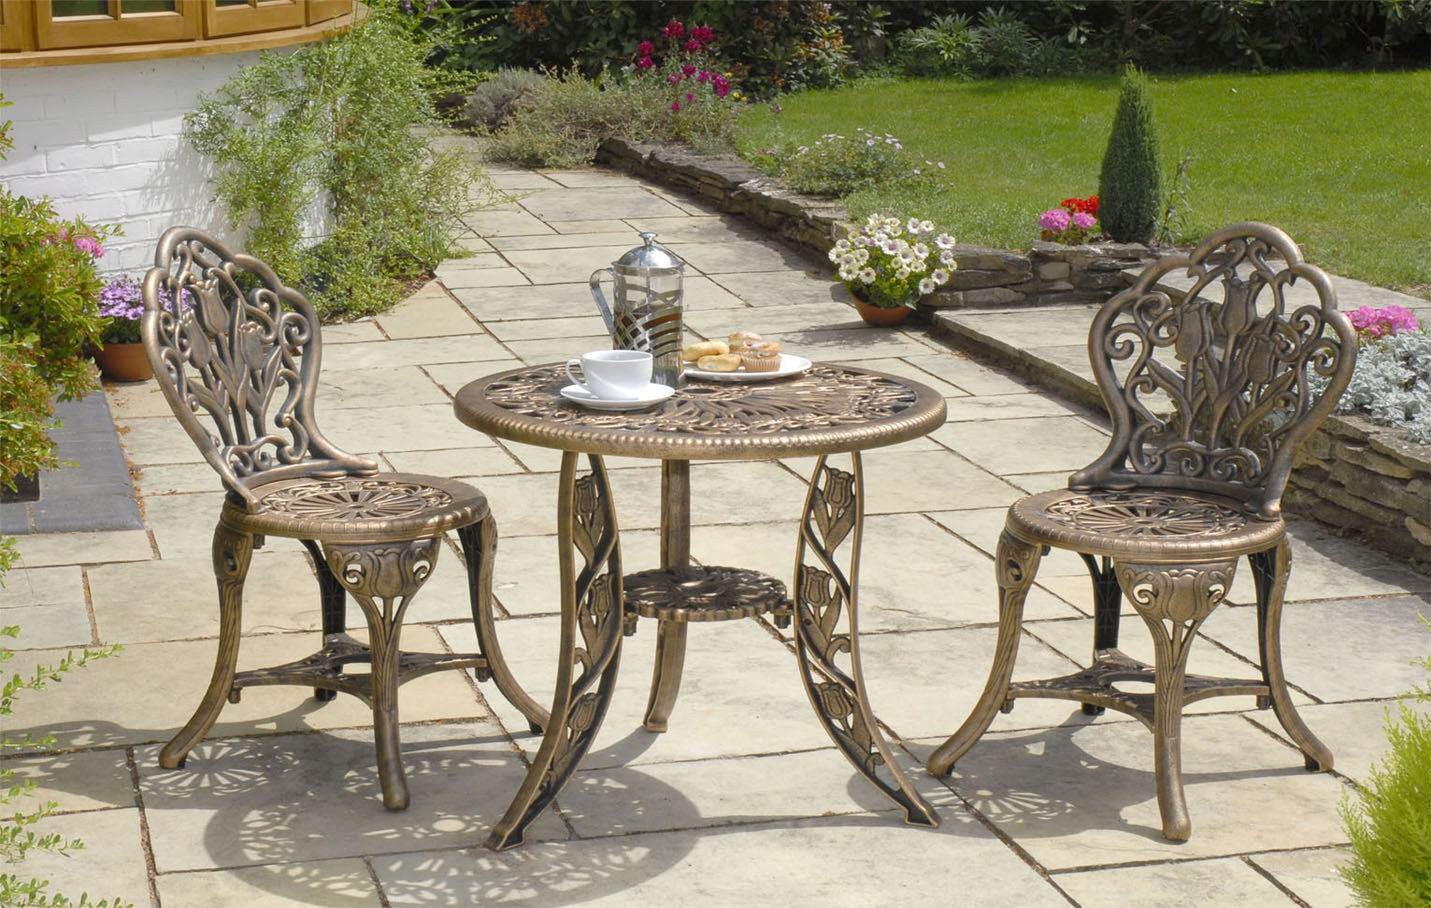 garden table and chairs garden-furniture-table-and-chairs | mobiion.com XWNQGAN